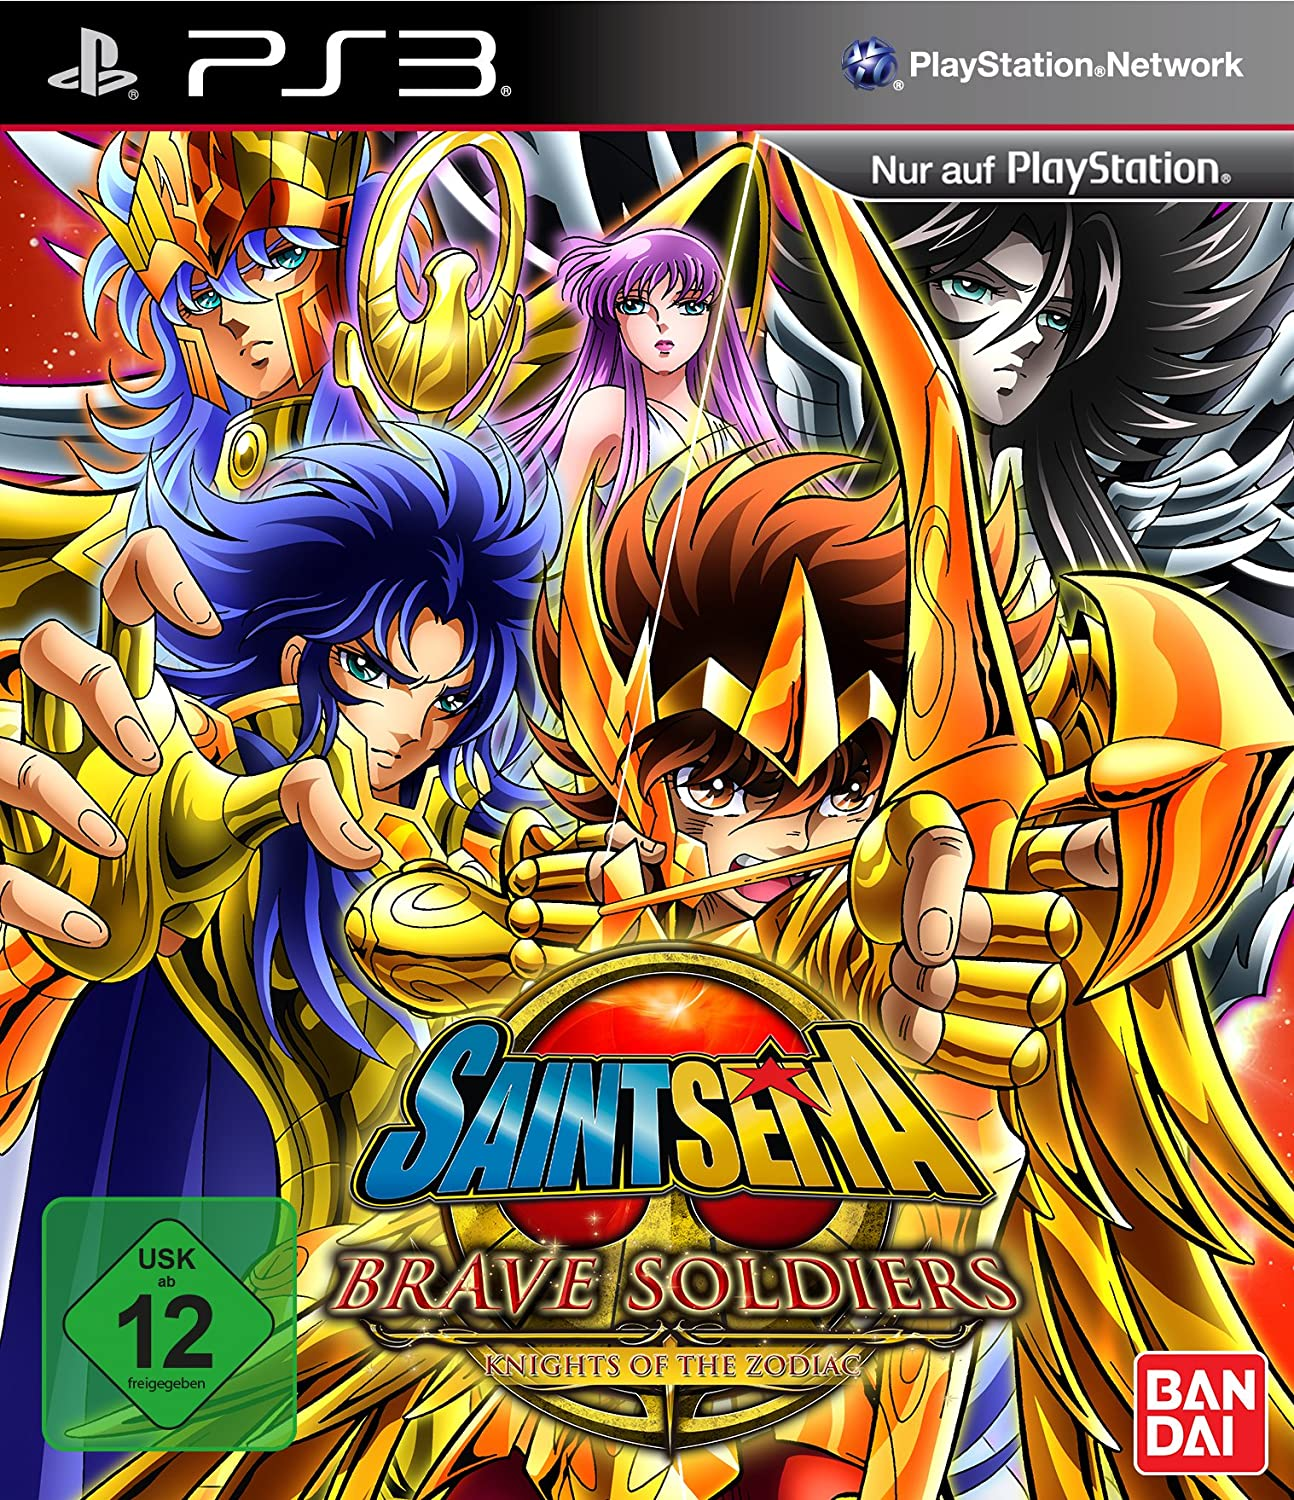 Saint Seiya Brave Soldiers - Knights of the Zodiac